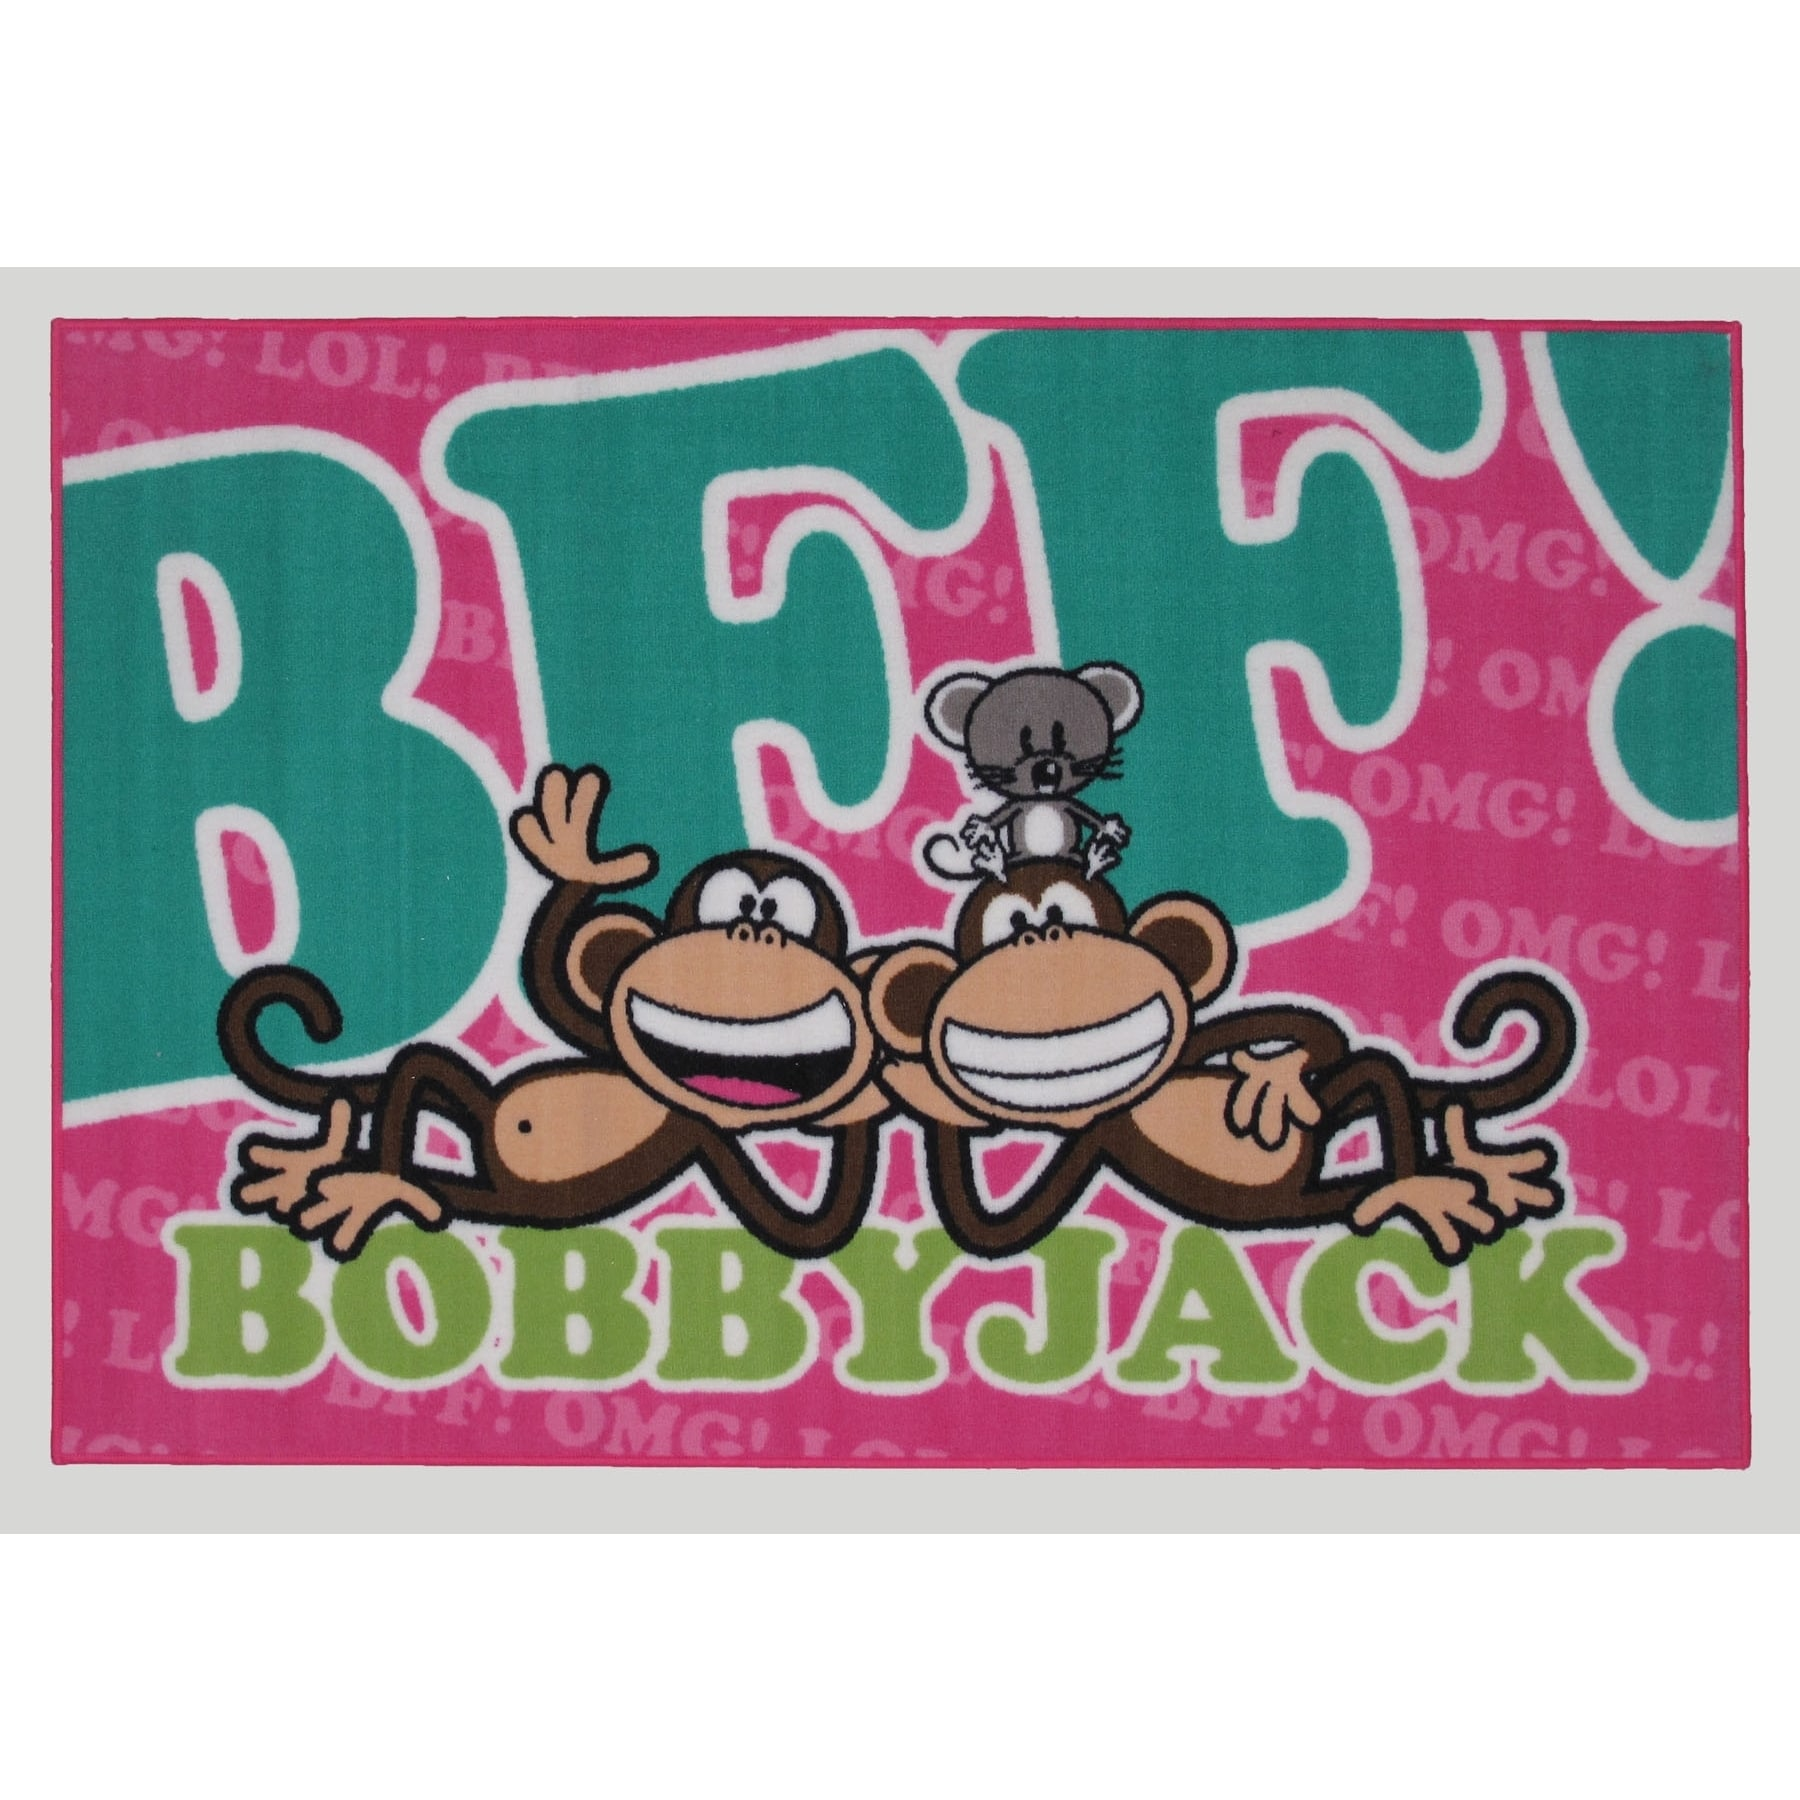 Overstock.com Machine-Made Bobby Jack Pink Nylon Accent Rug (1'6 x 2'4) at Sears.com